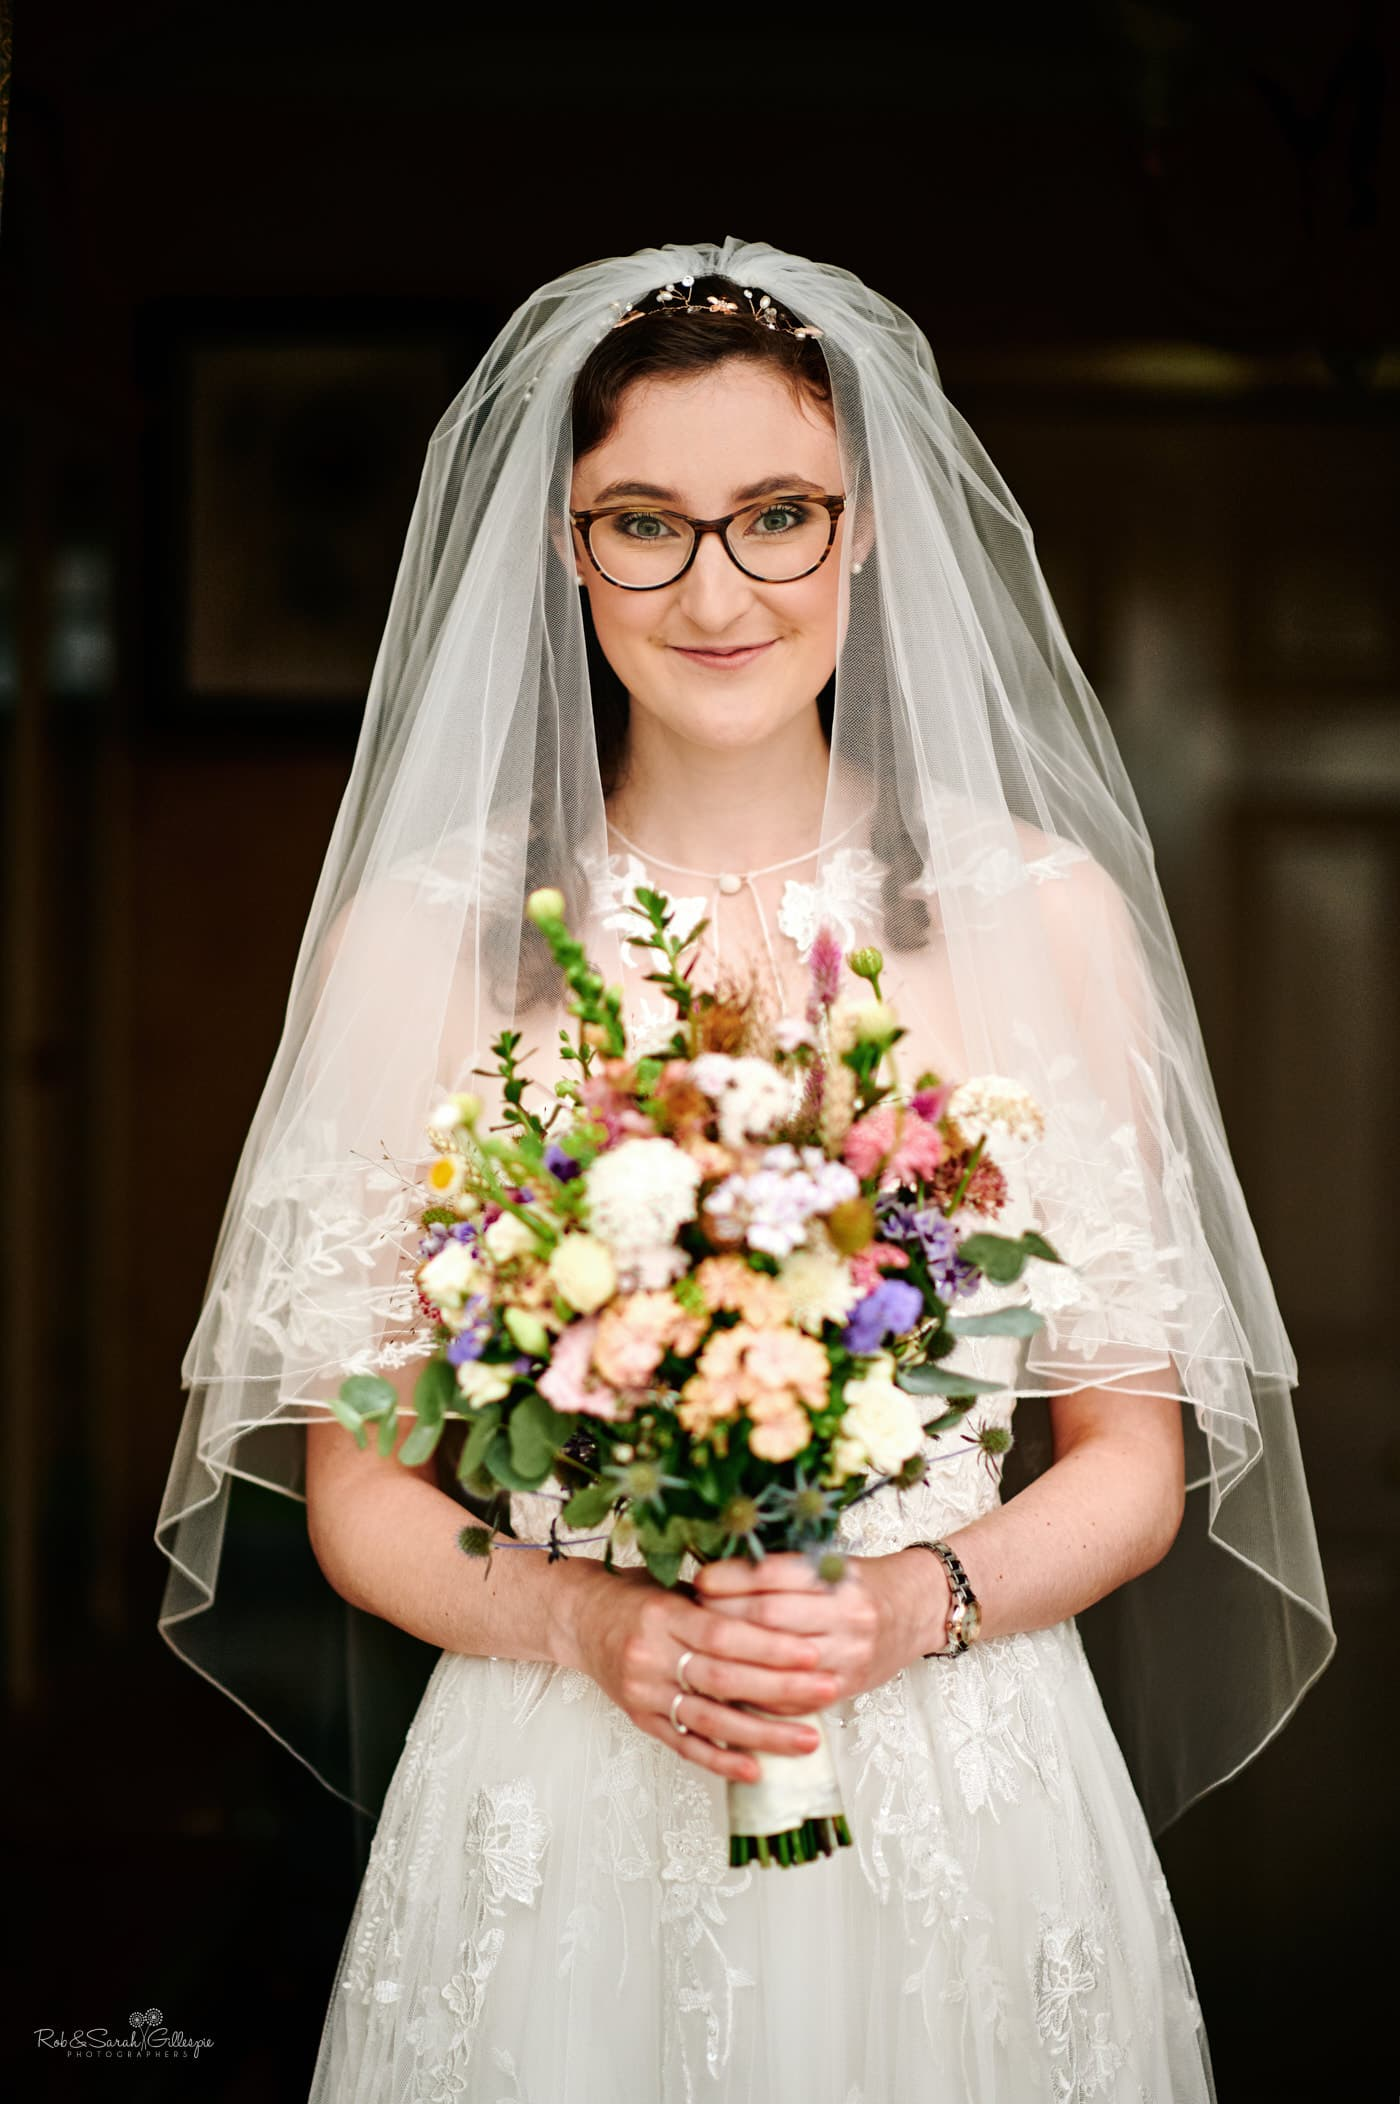 Bride portrait with beautiful bouquet